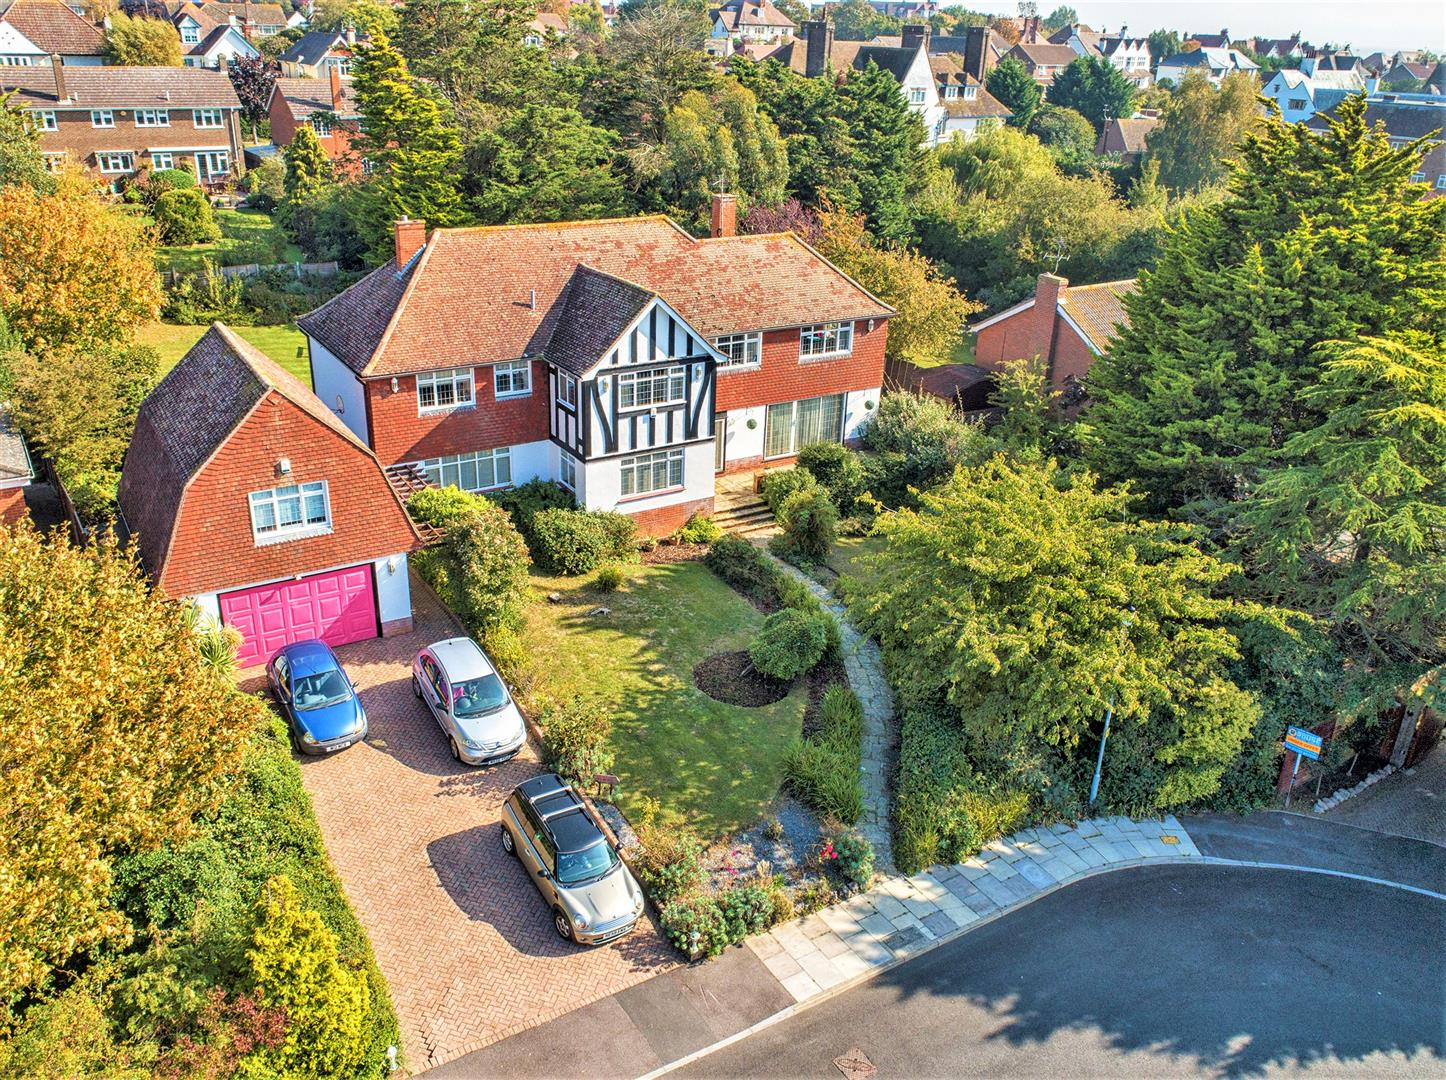 First Avenue, Frinton-On-Sea, Essex, CO13 9HA